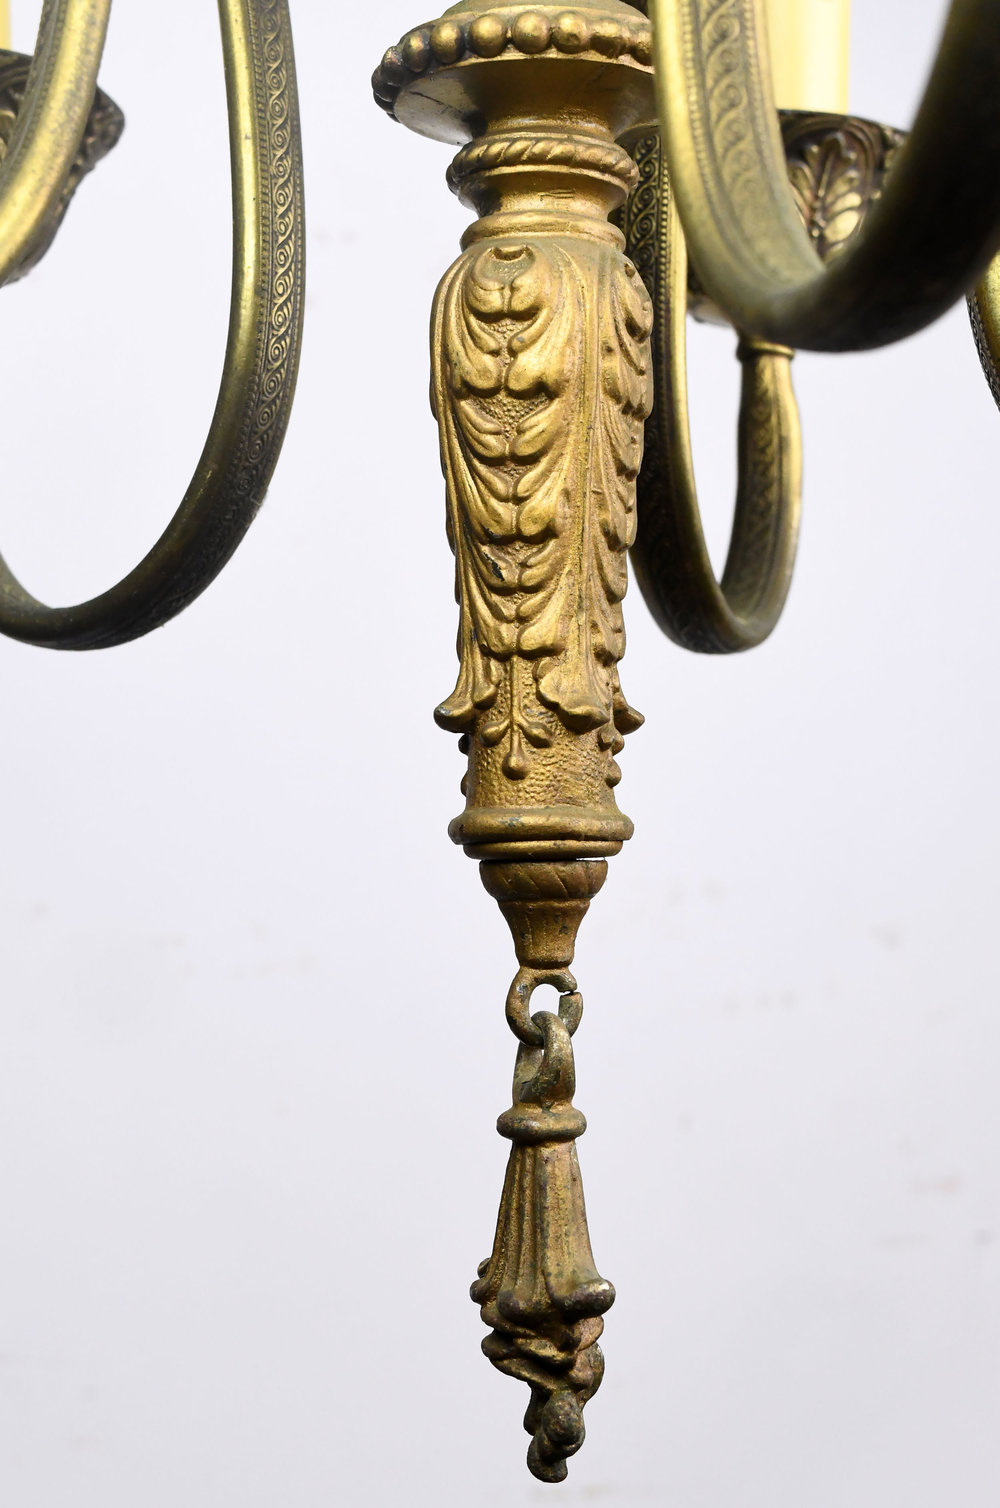 47432-five-candle-french-chandelier-finial-detail.jpg